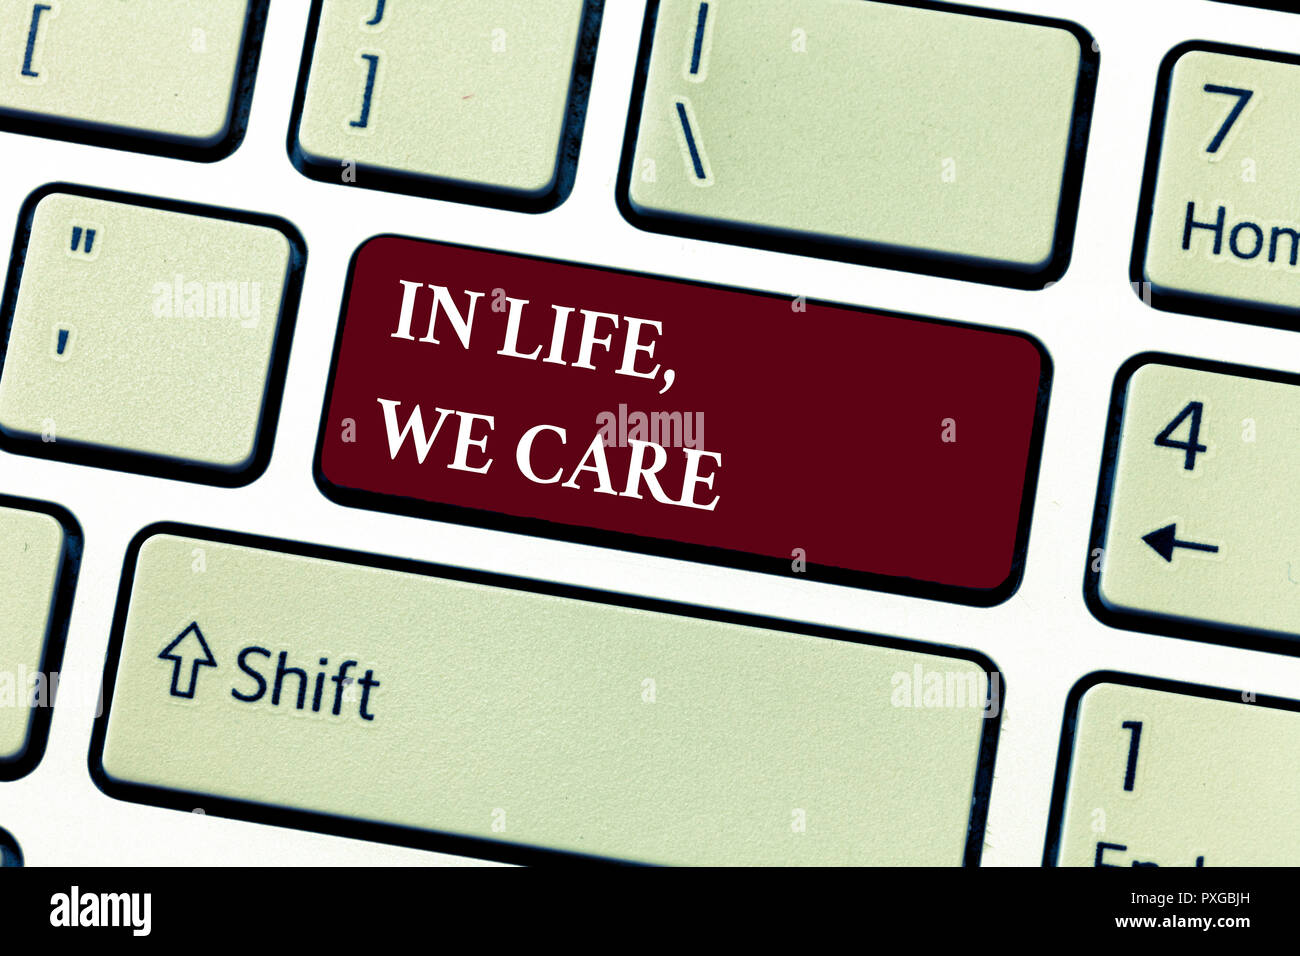 Text sign showing In Life, We Care. Conceptual photo Cherishing someones life Giving care and attention. - Stock Image